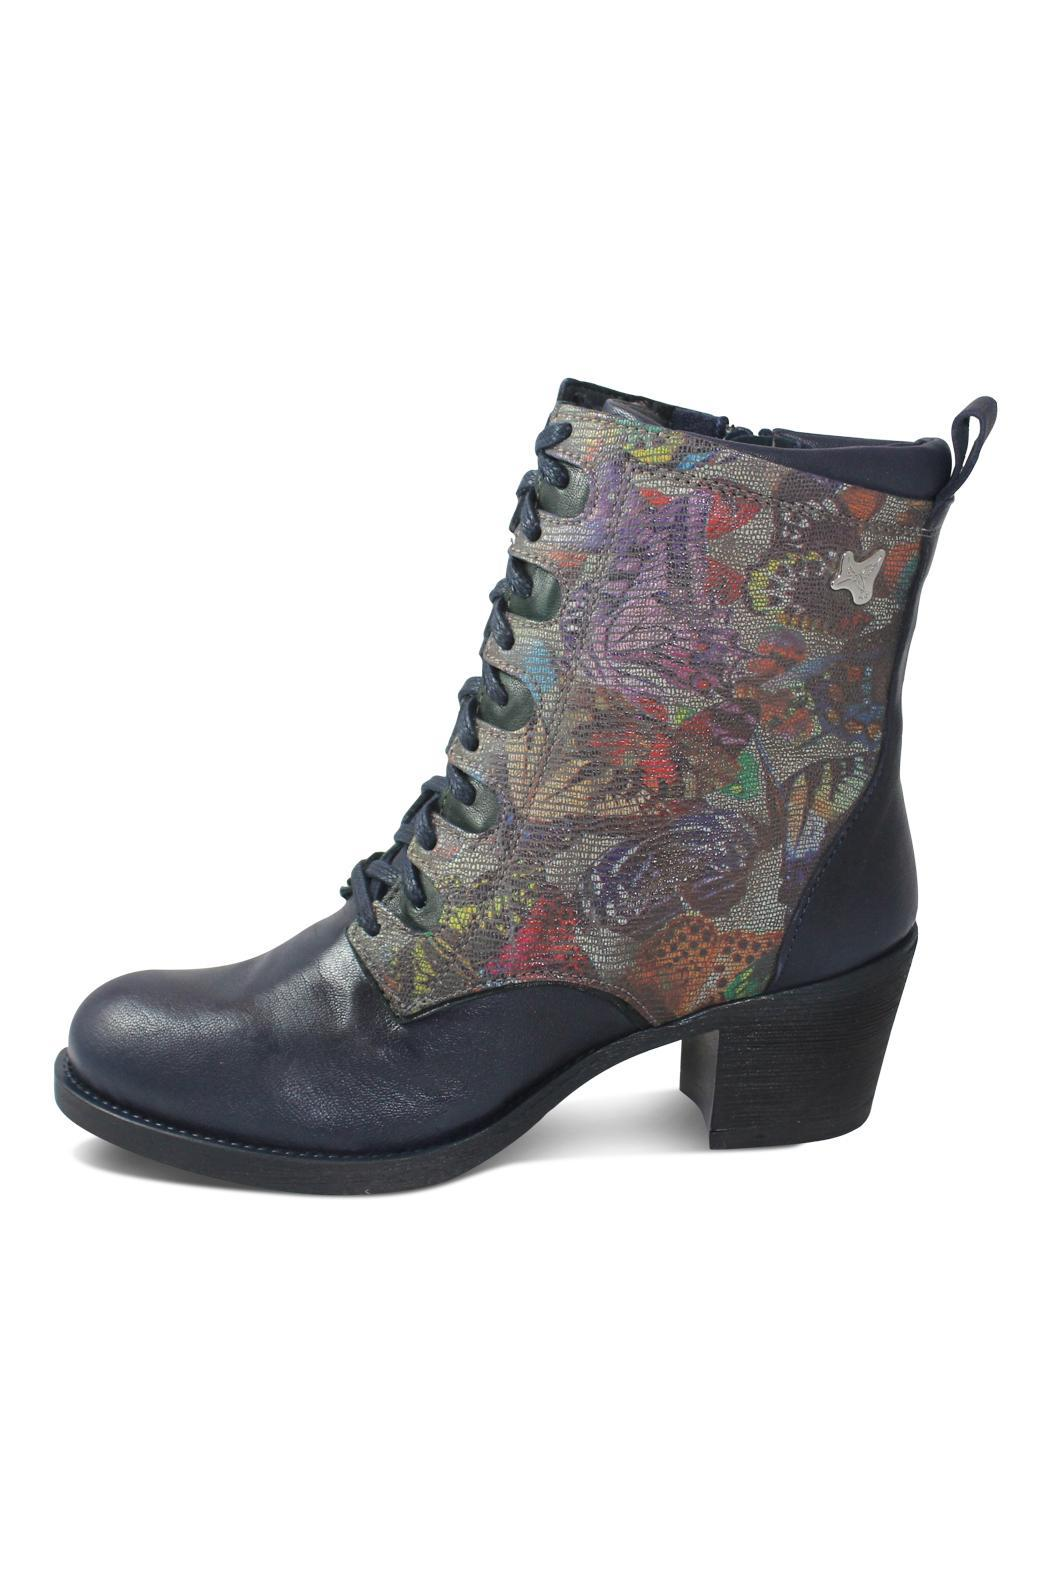 portofino patterned mid boot from columbia by big